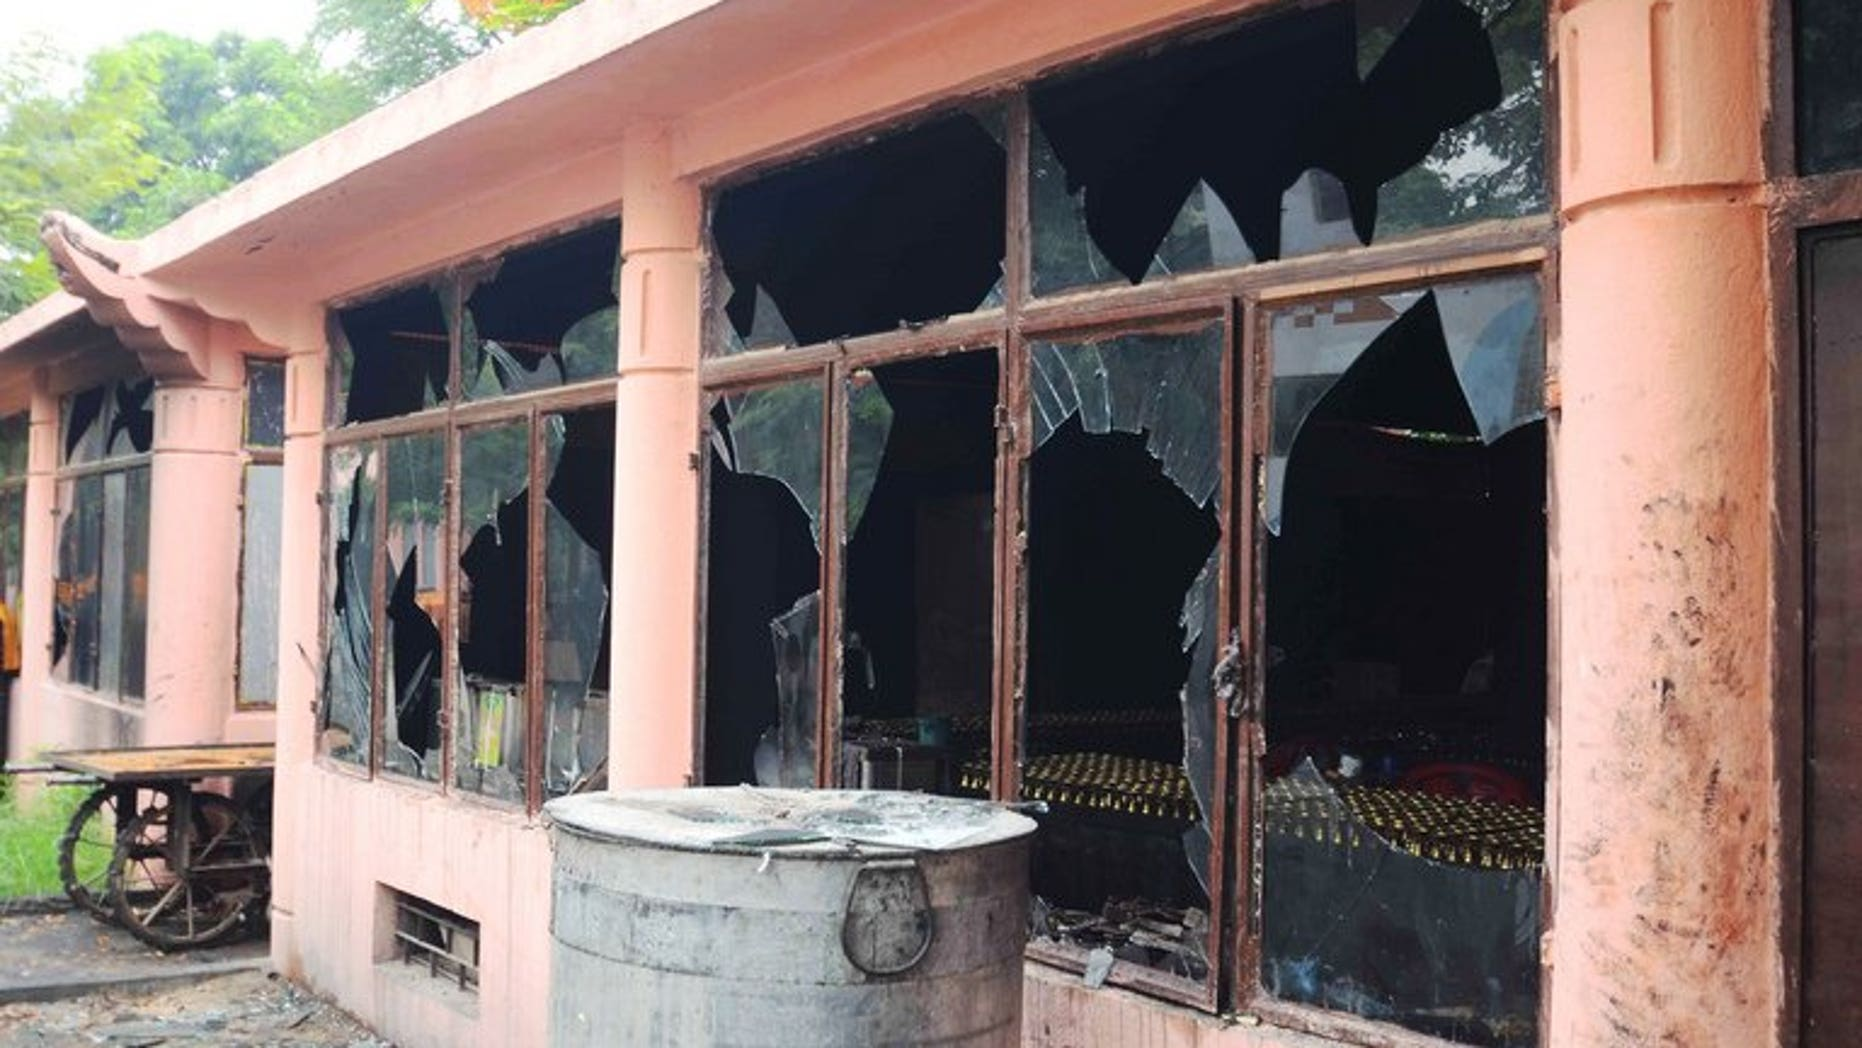 Broken windows at the Bodh Gaya Buddhist temple complex after several explosions took place on July 7, 2013. Indian police investigating bomb blasts at one of Buddhism's holiest sites released sketches of a suspect on Tuesday and offered a reward for information about the attacks.